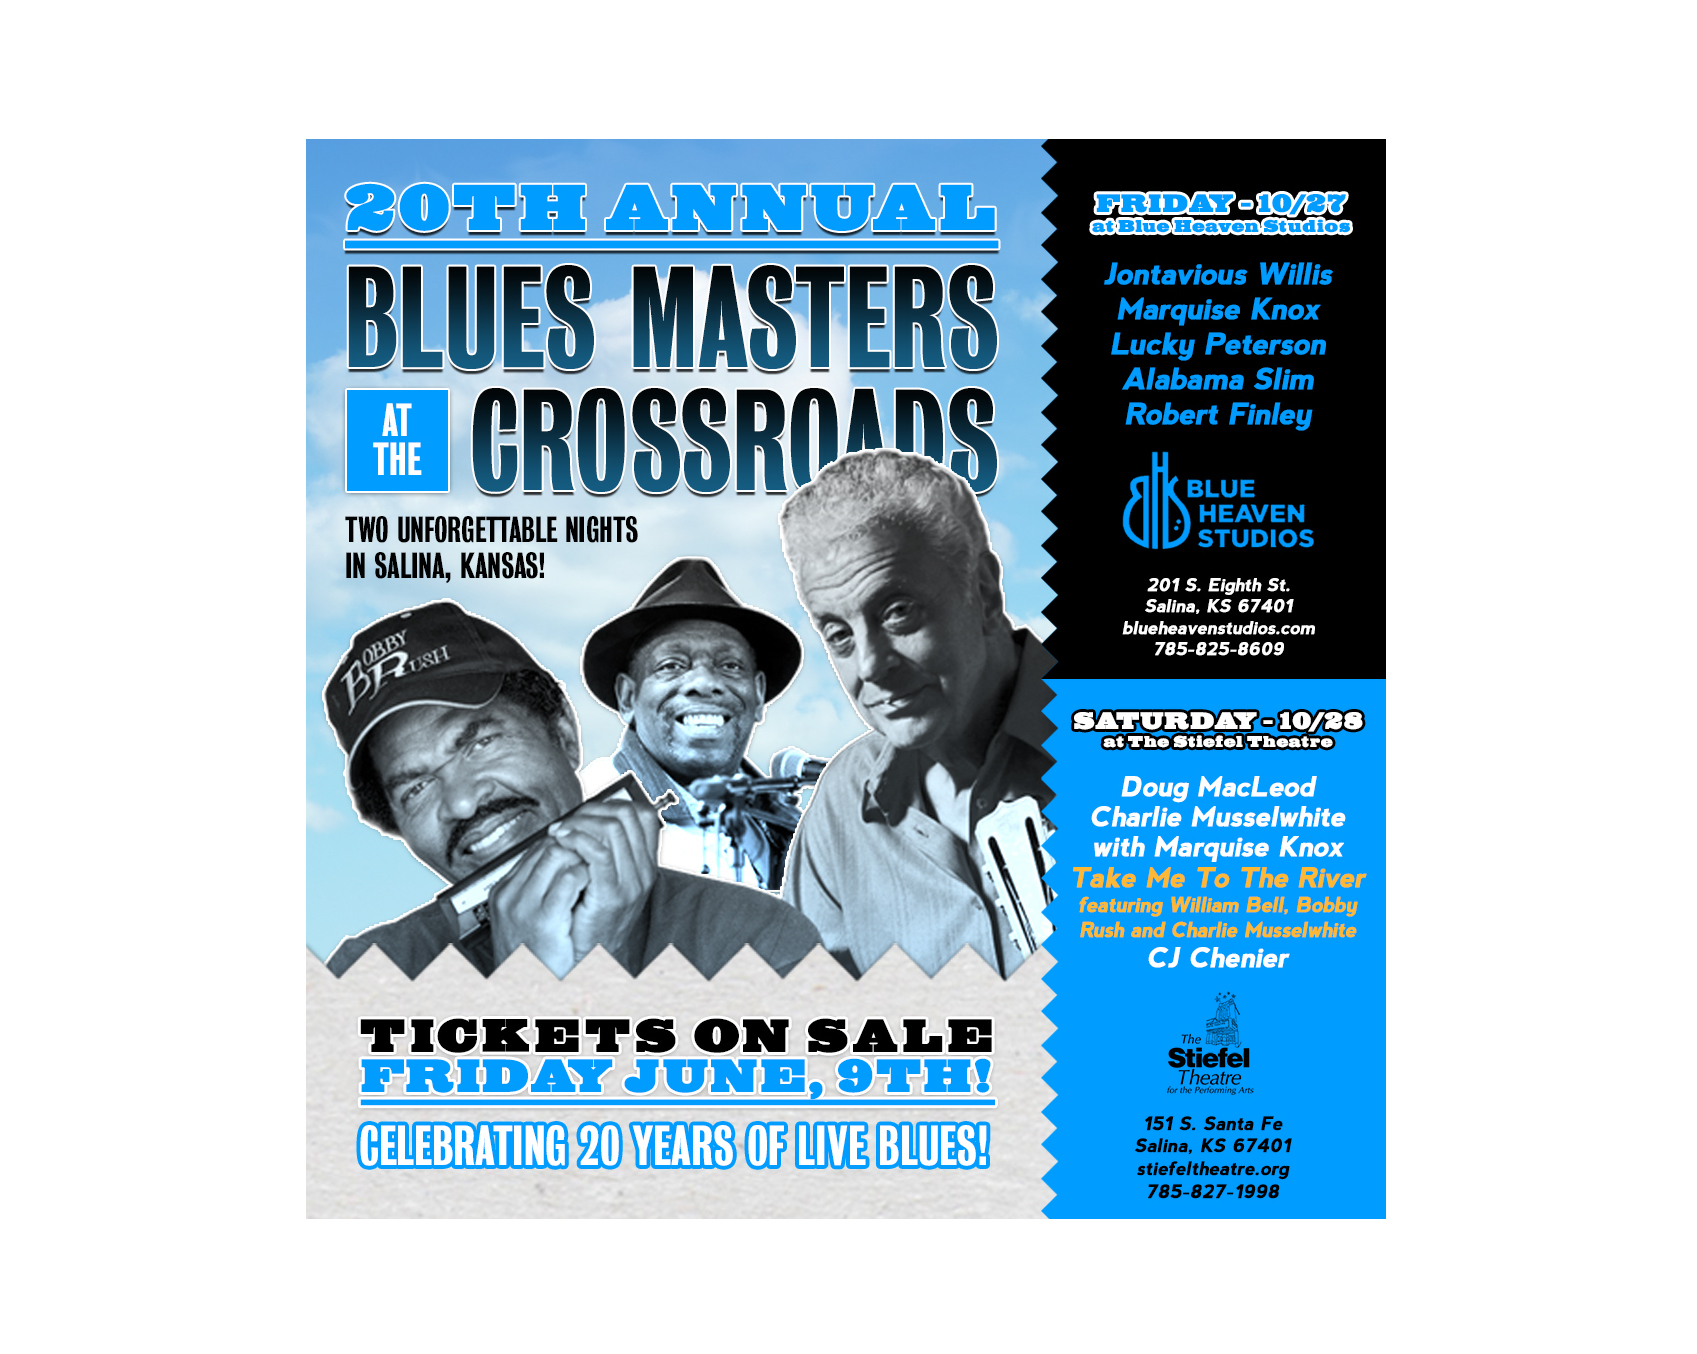 Excitement Building For 20th Anniversary Blues Masters